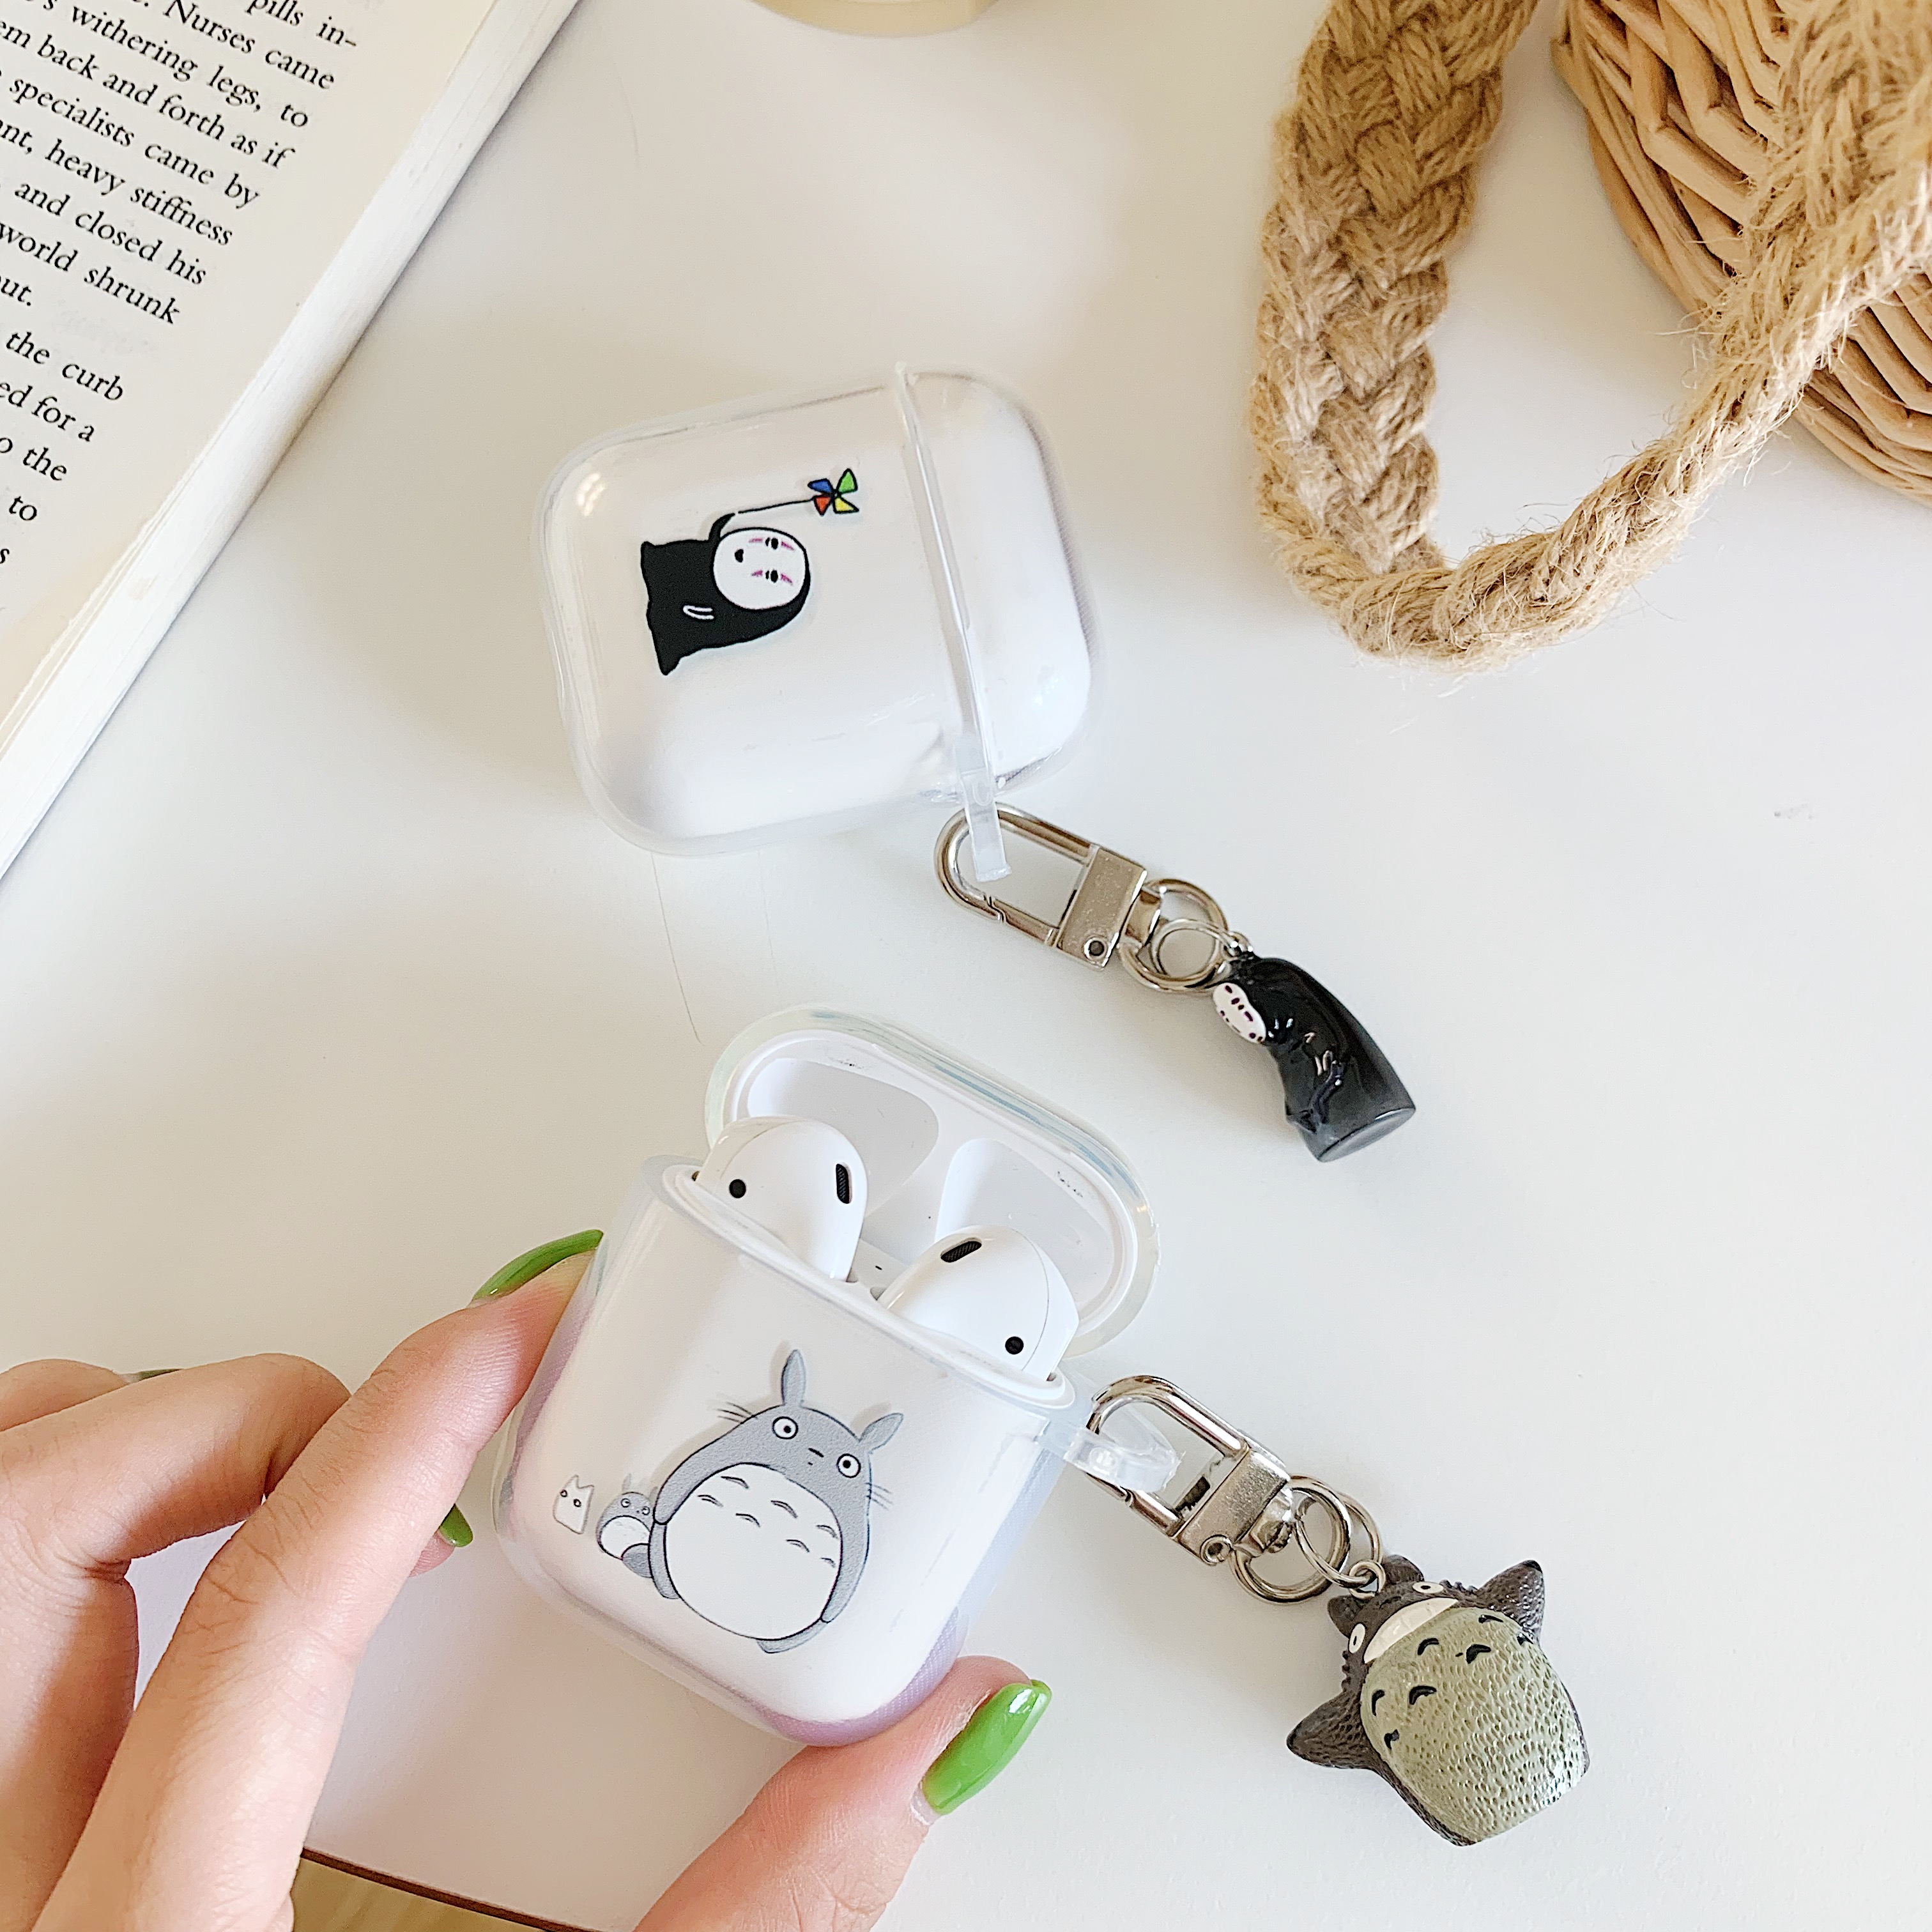 Totoro No Face man Doll Pendant Cartoon Wireless Bluetooth Earphone Case For Apple AirPods 1 2 Silicone Charging in Earphone Accessories from Consumer Electronics